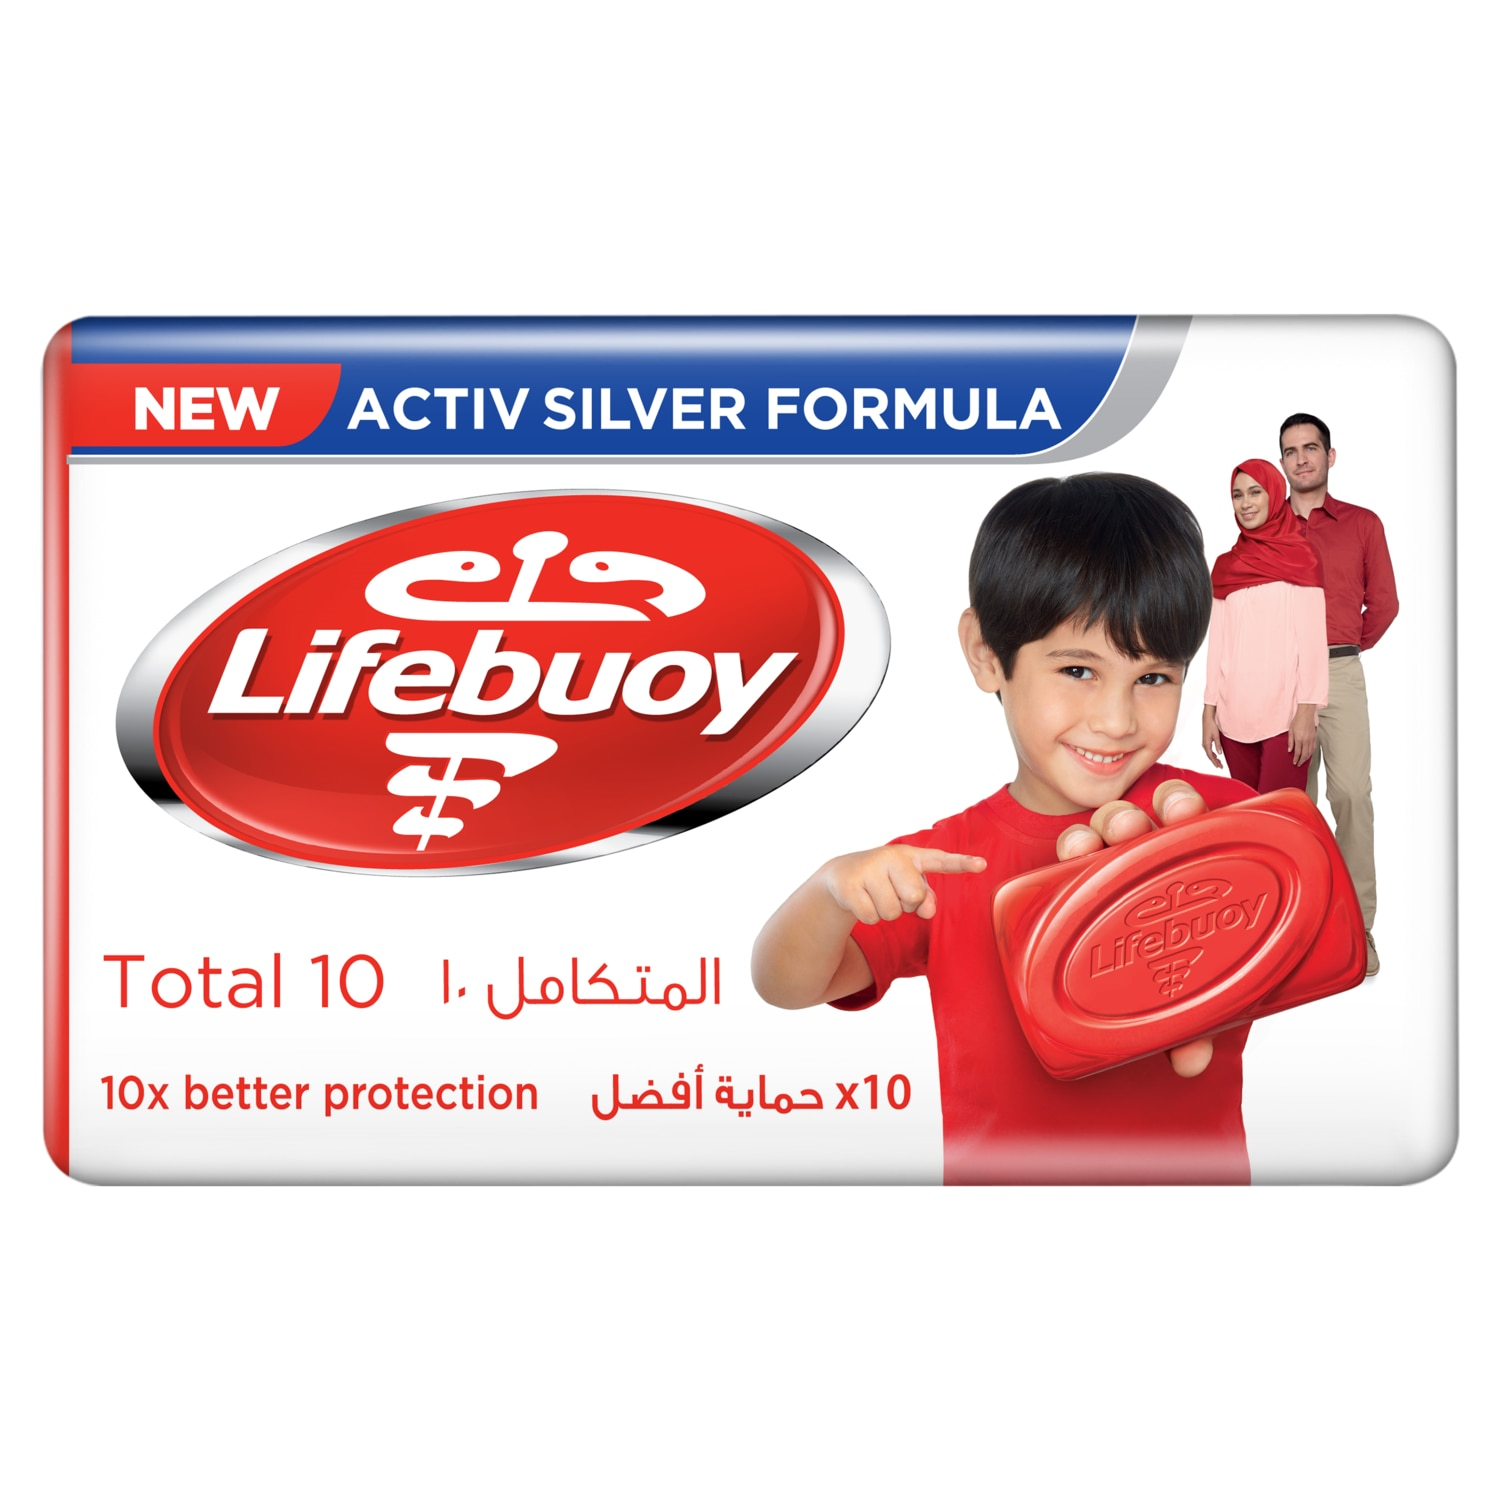 Lifebuoy Total 10 Soap Wrapper 75g Front